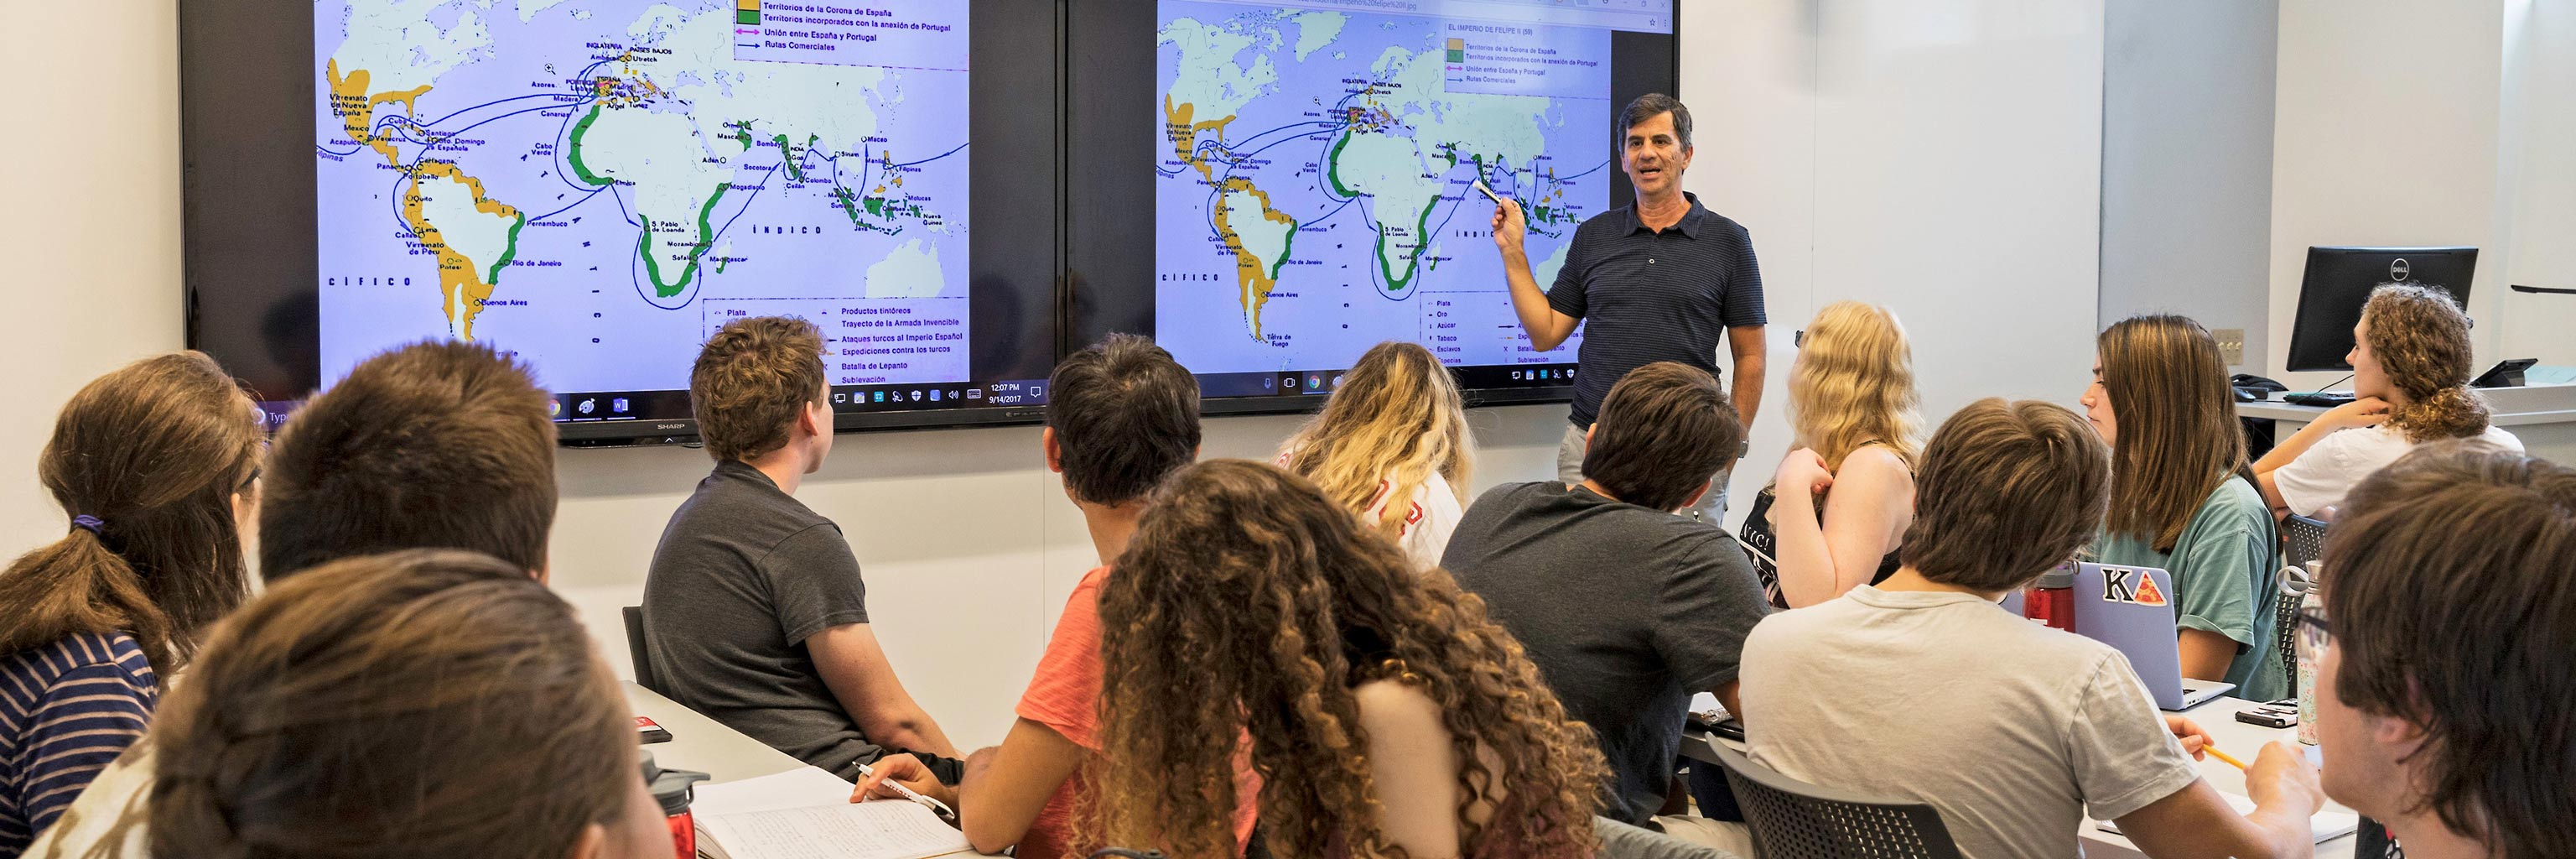 Instructor lectures in front of a world map to a class of students